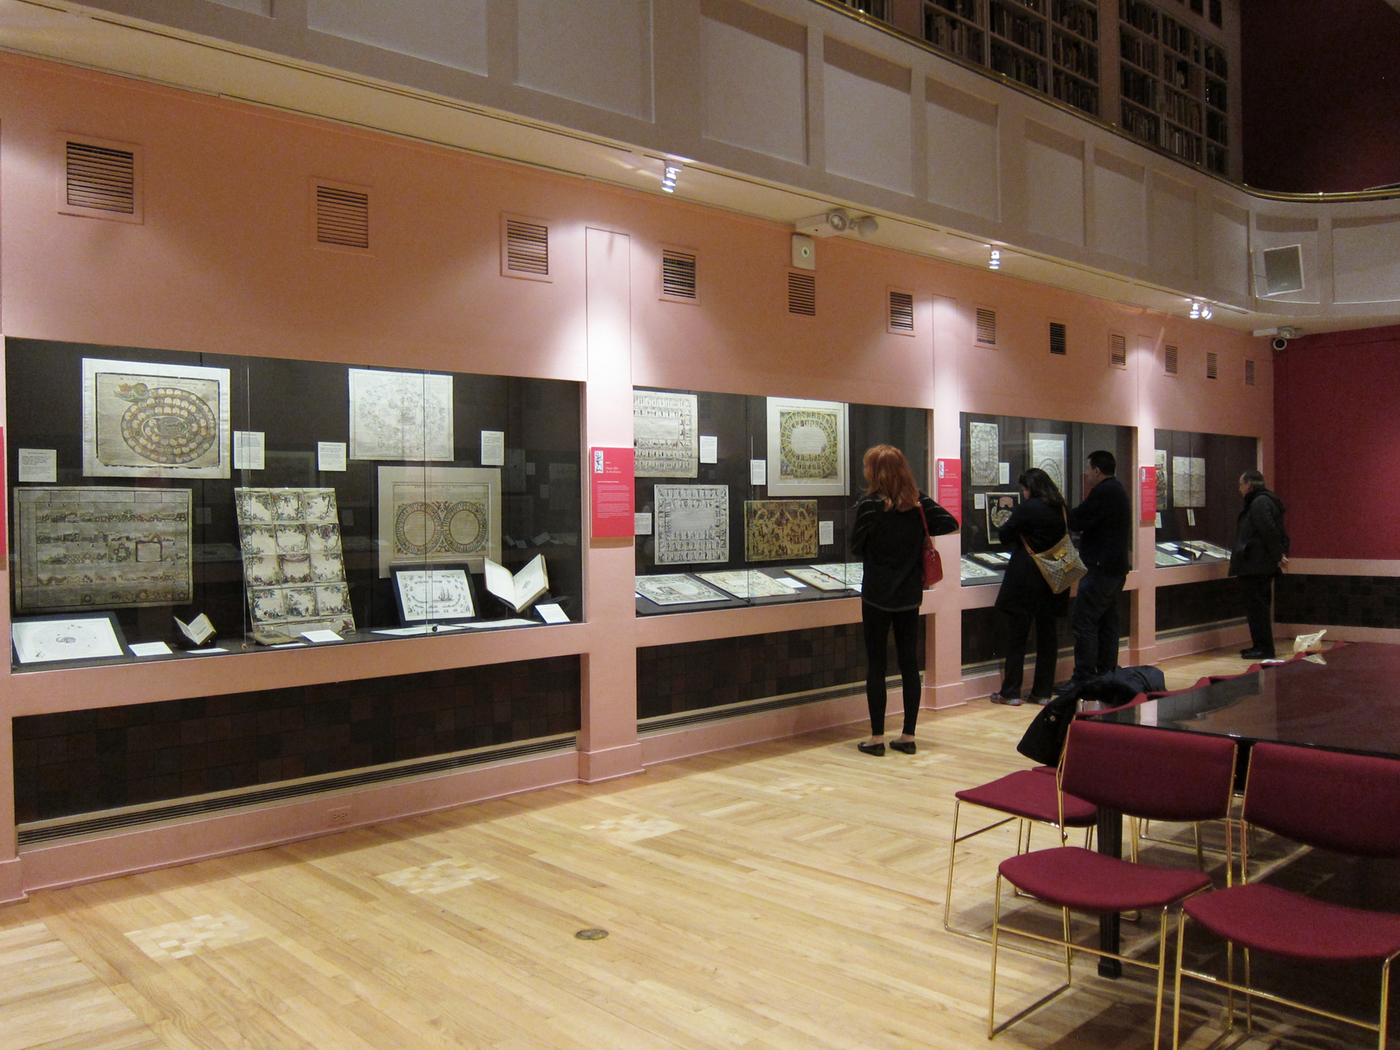 Installation view of 'The Royal Game of the Goose' at the Grolier Club